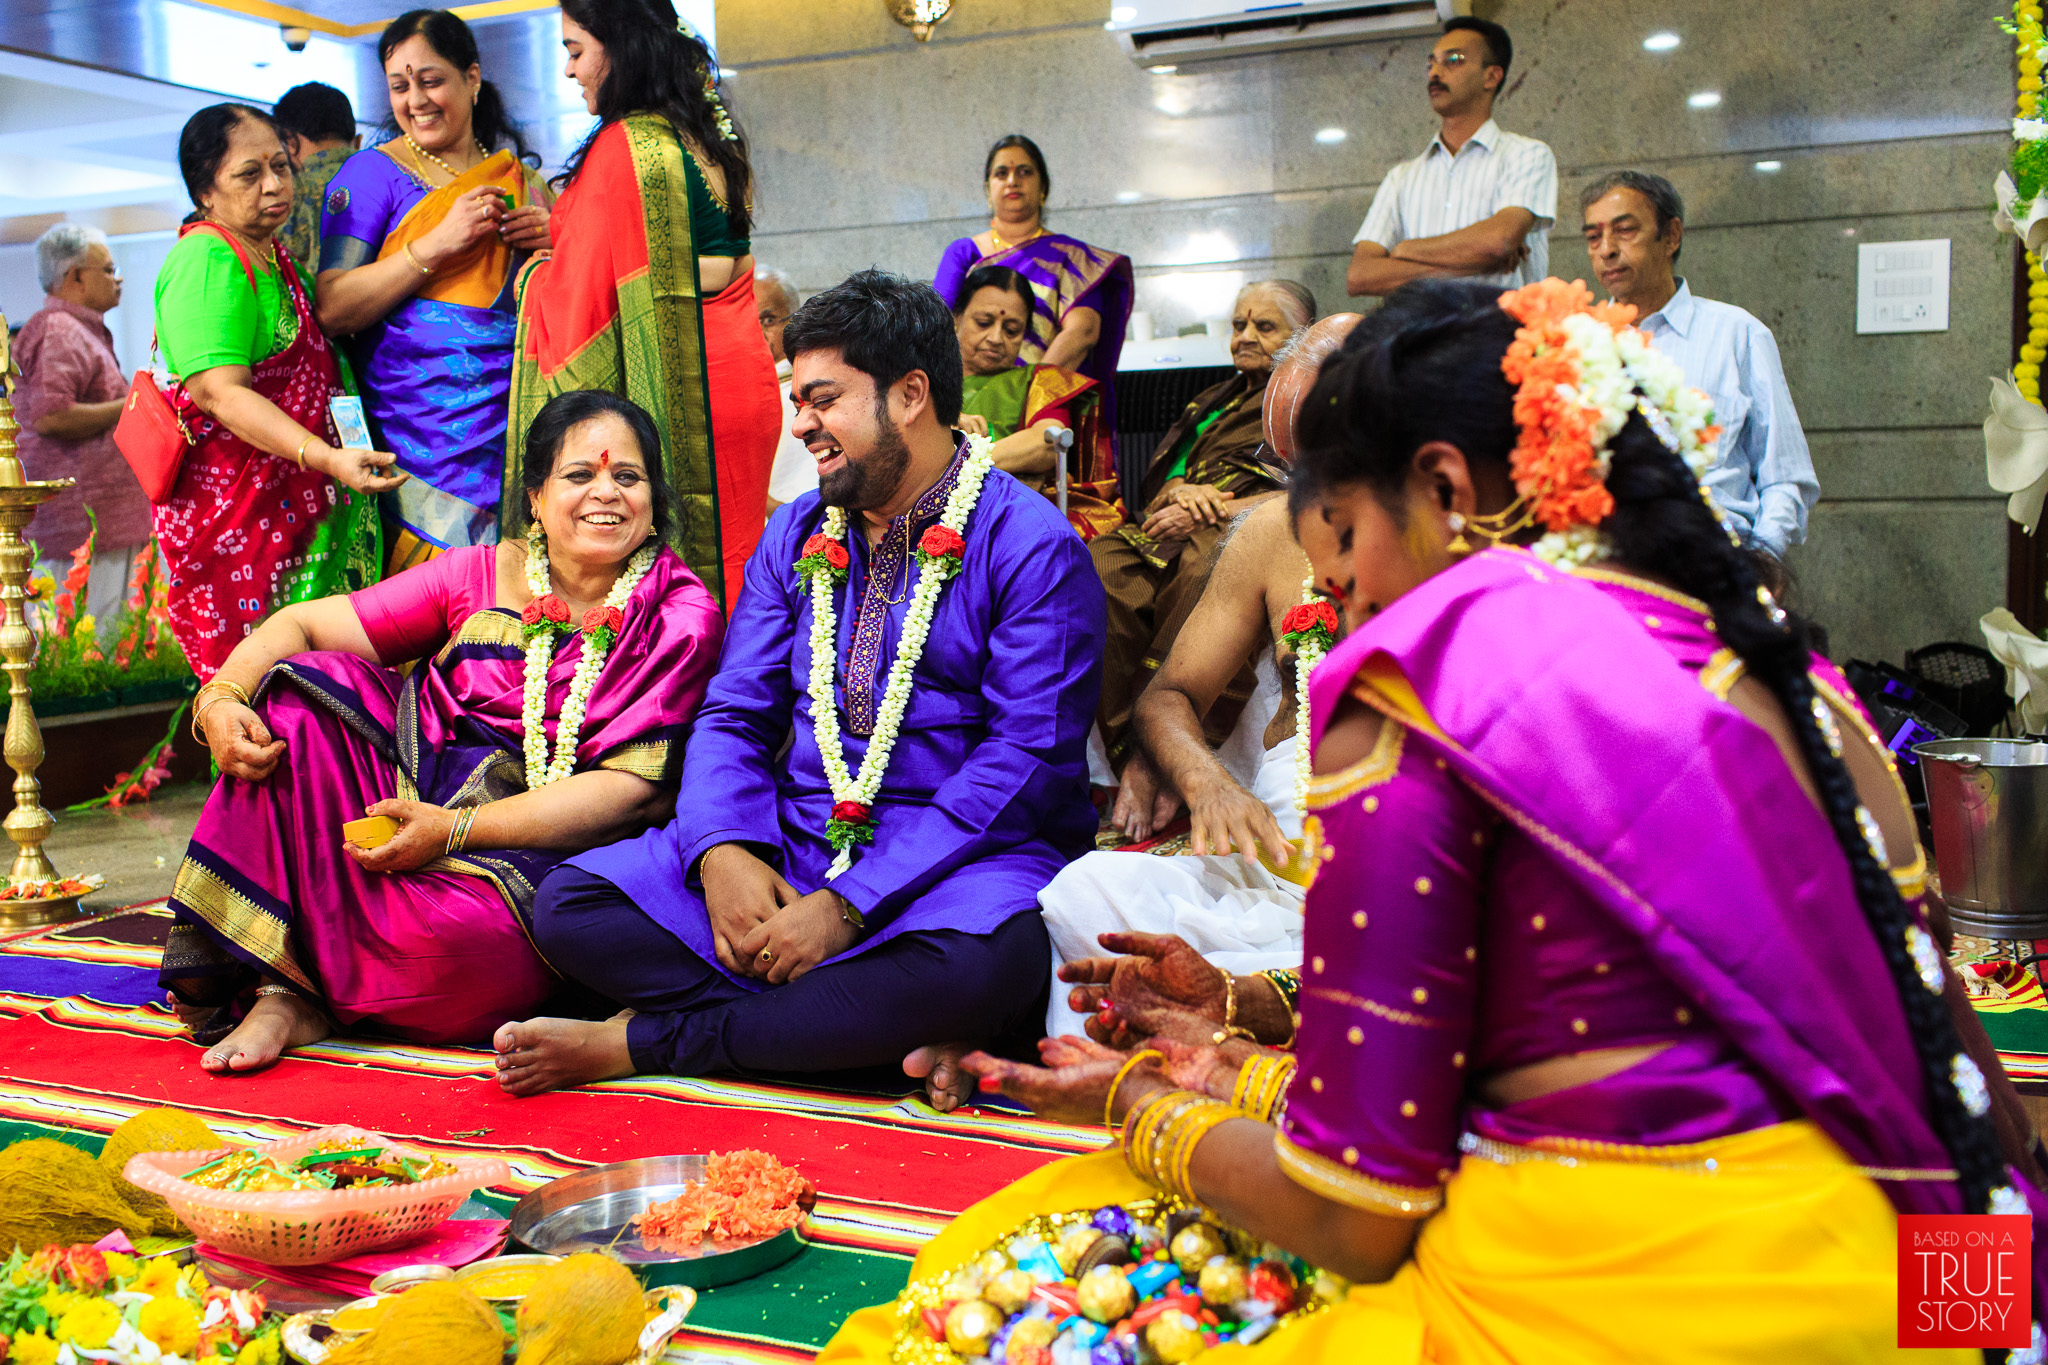 Tambrahm-Candid-Wedding-Photographers-Bangalore-0021.jpg